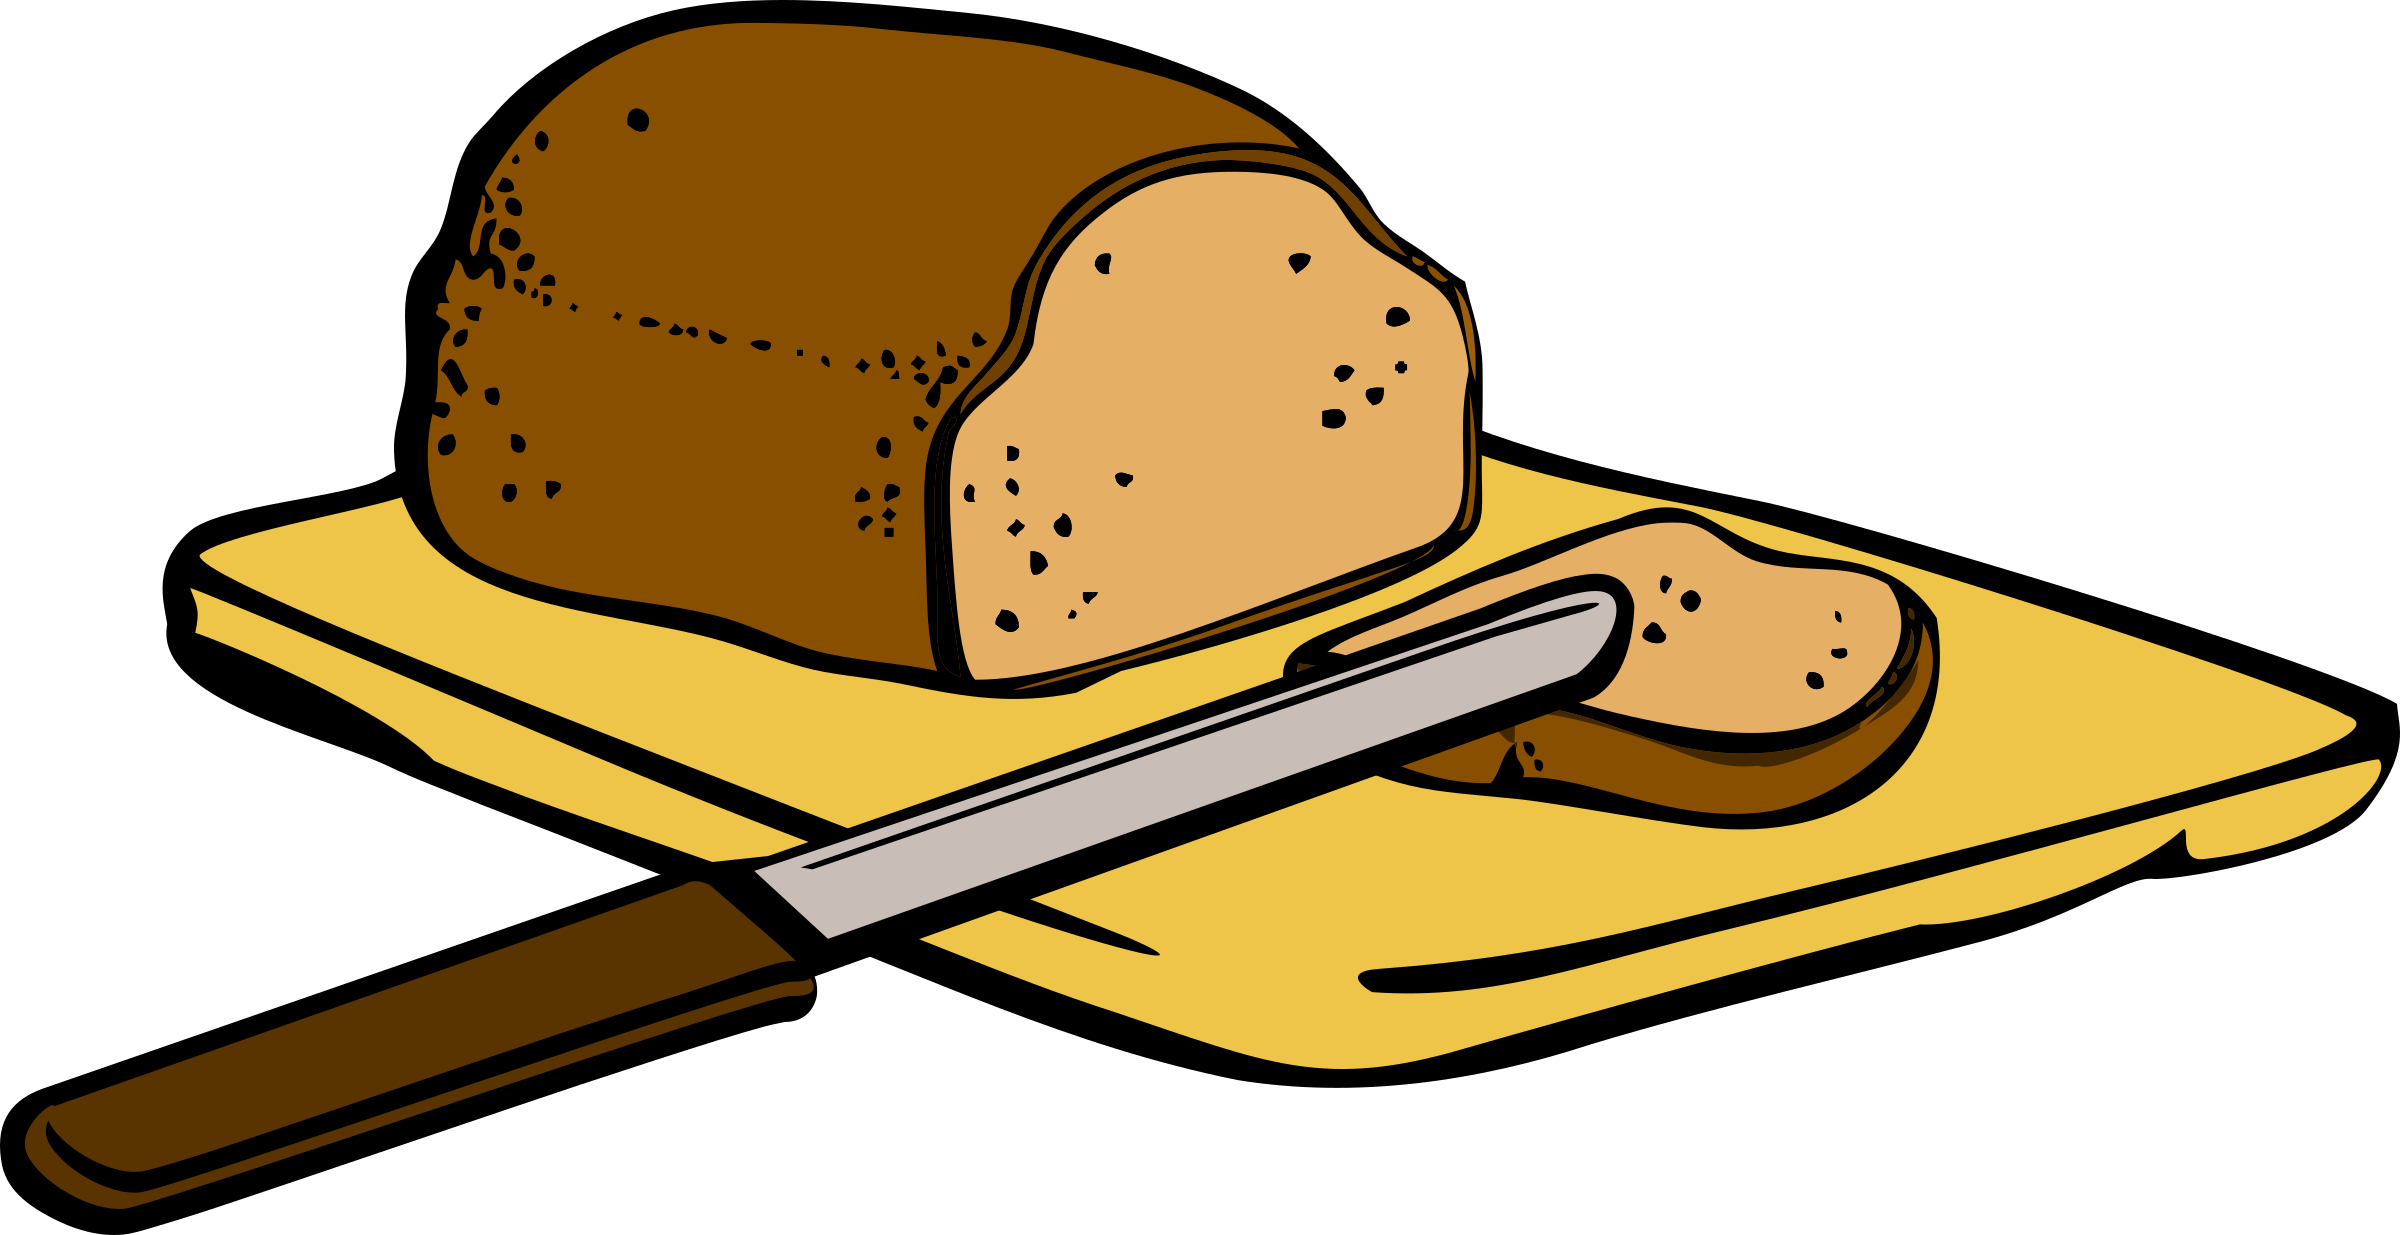 Bread clipart png. Knife food pencil and